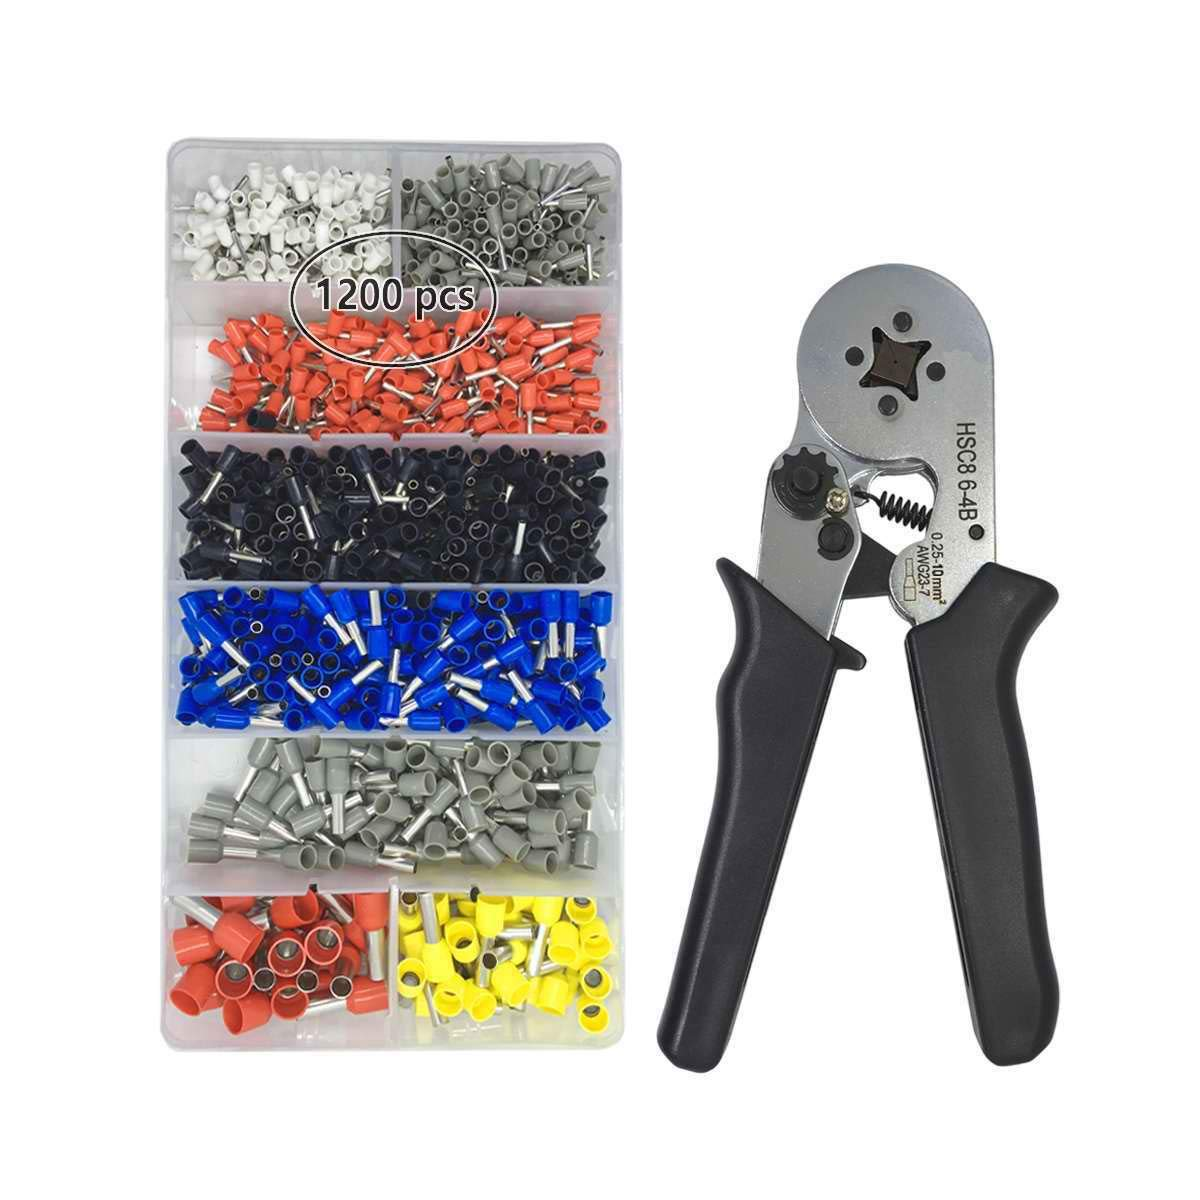 Crimper Plier Set VLIKE Wire Crimping Tool Kit w/ 1200 Terminal Connector Sleeves | Electricians, Contractors, Repair Support | Ferrule Crimper Pliers for Stripper, Wiring Projects